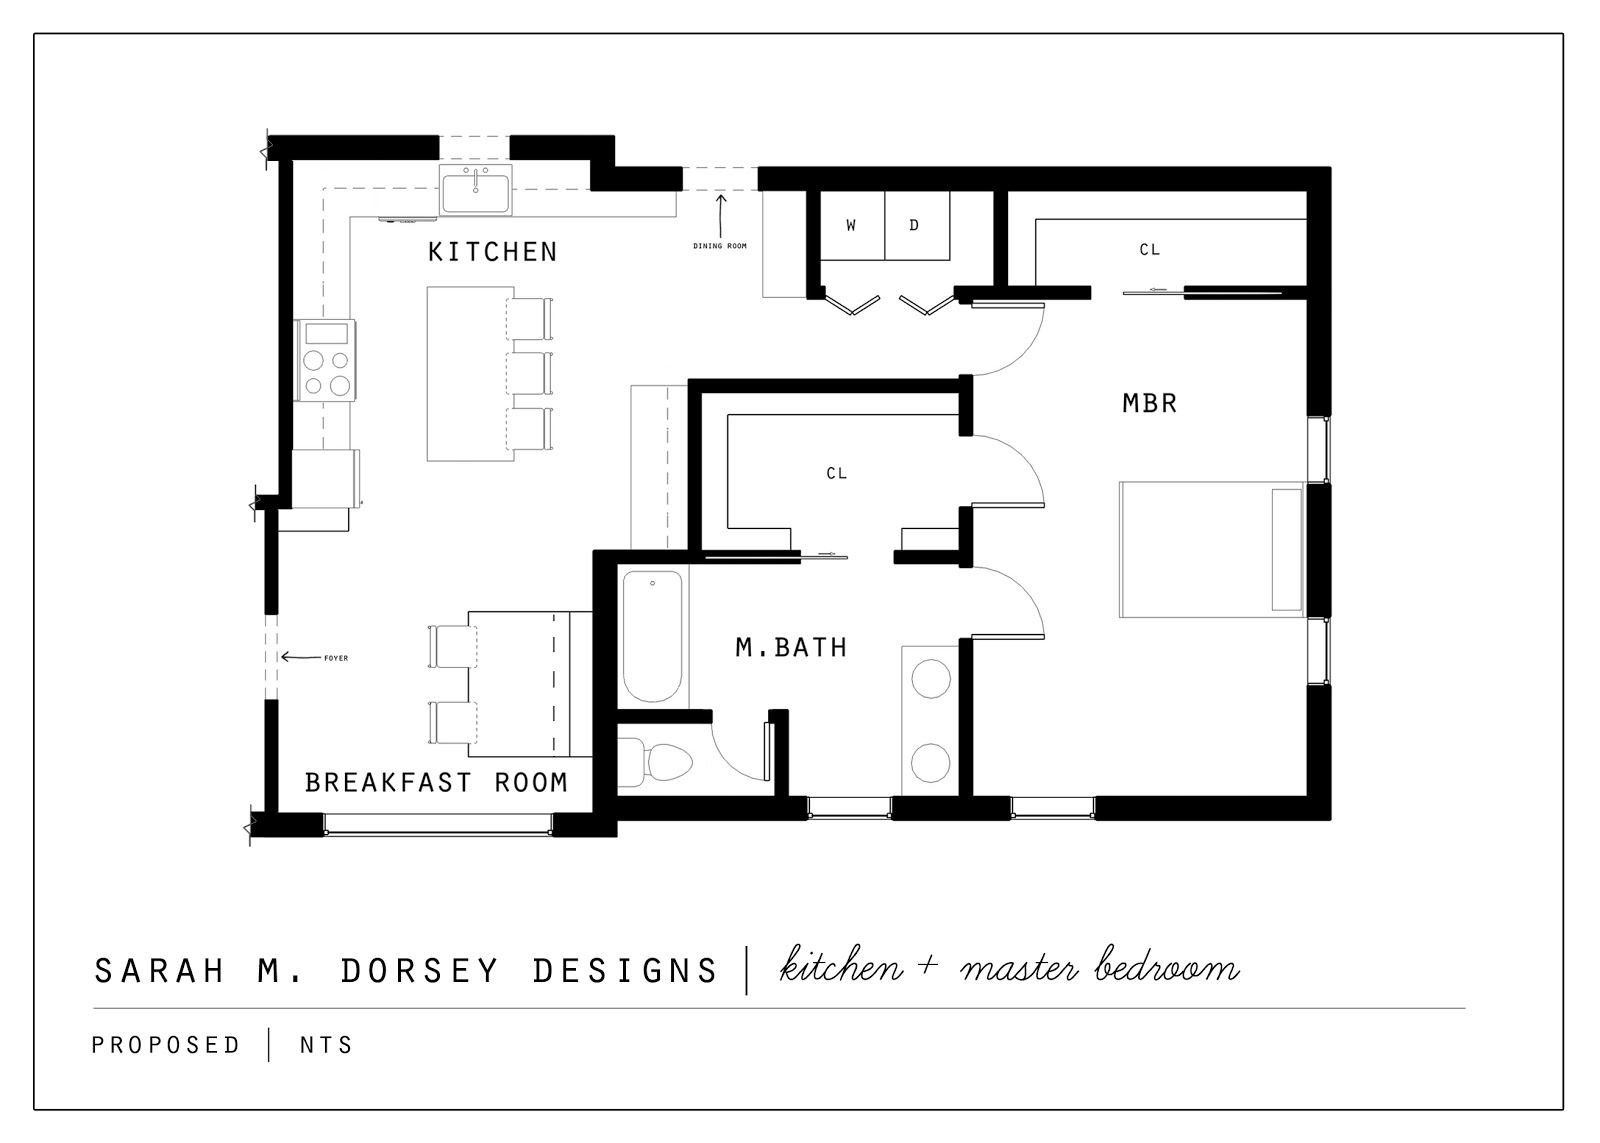 Sarah m dorsey designs proposed kitchen and master suite remodel Master bedroom plan dwg